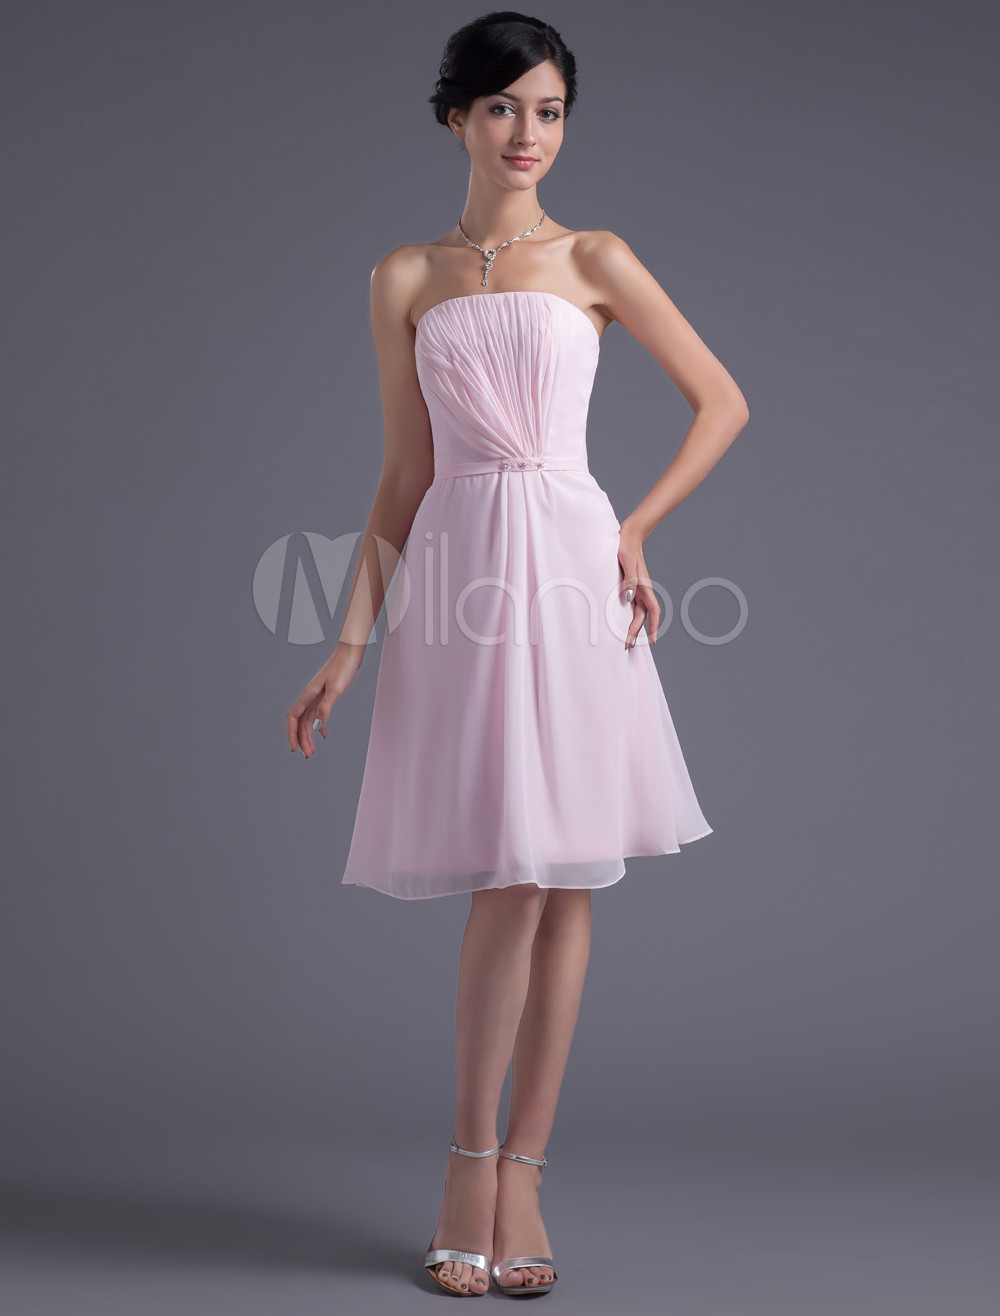 A-line Pink Chiffon Strapless Knee-Length Bridesmaid Dress For Wedding